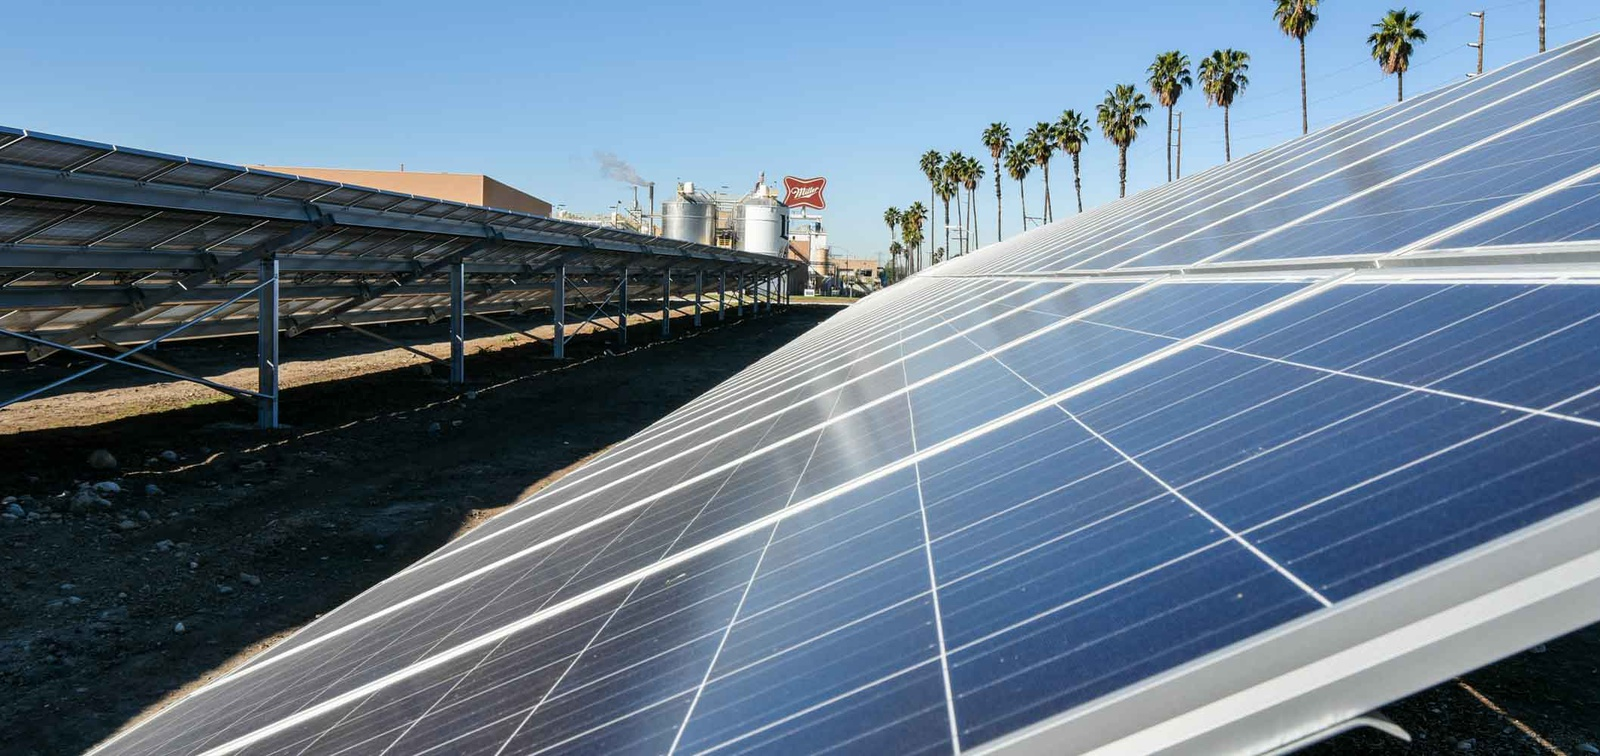 Blockchain-based renewables project in Los Angeles wins $9M state grant